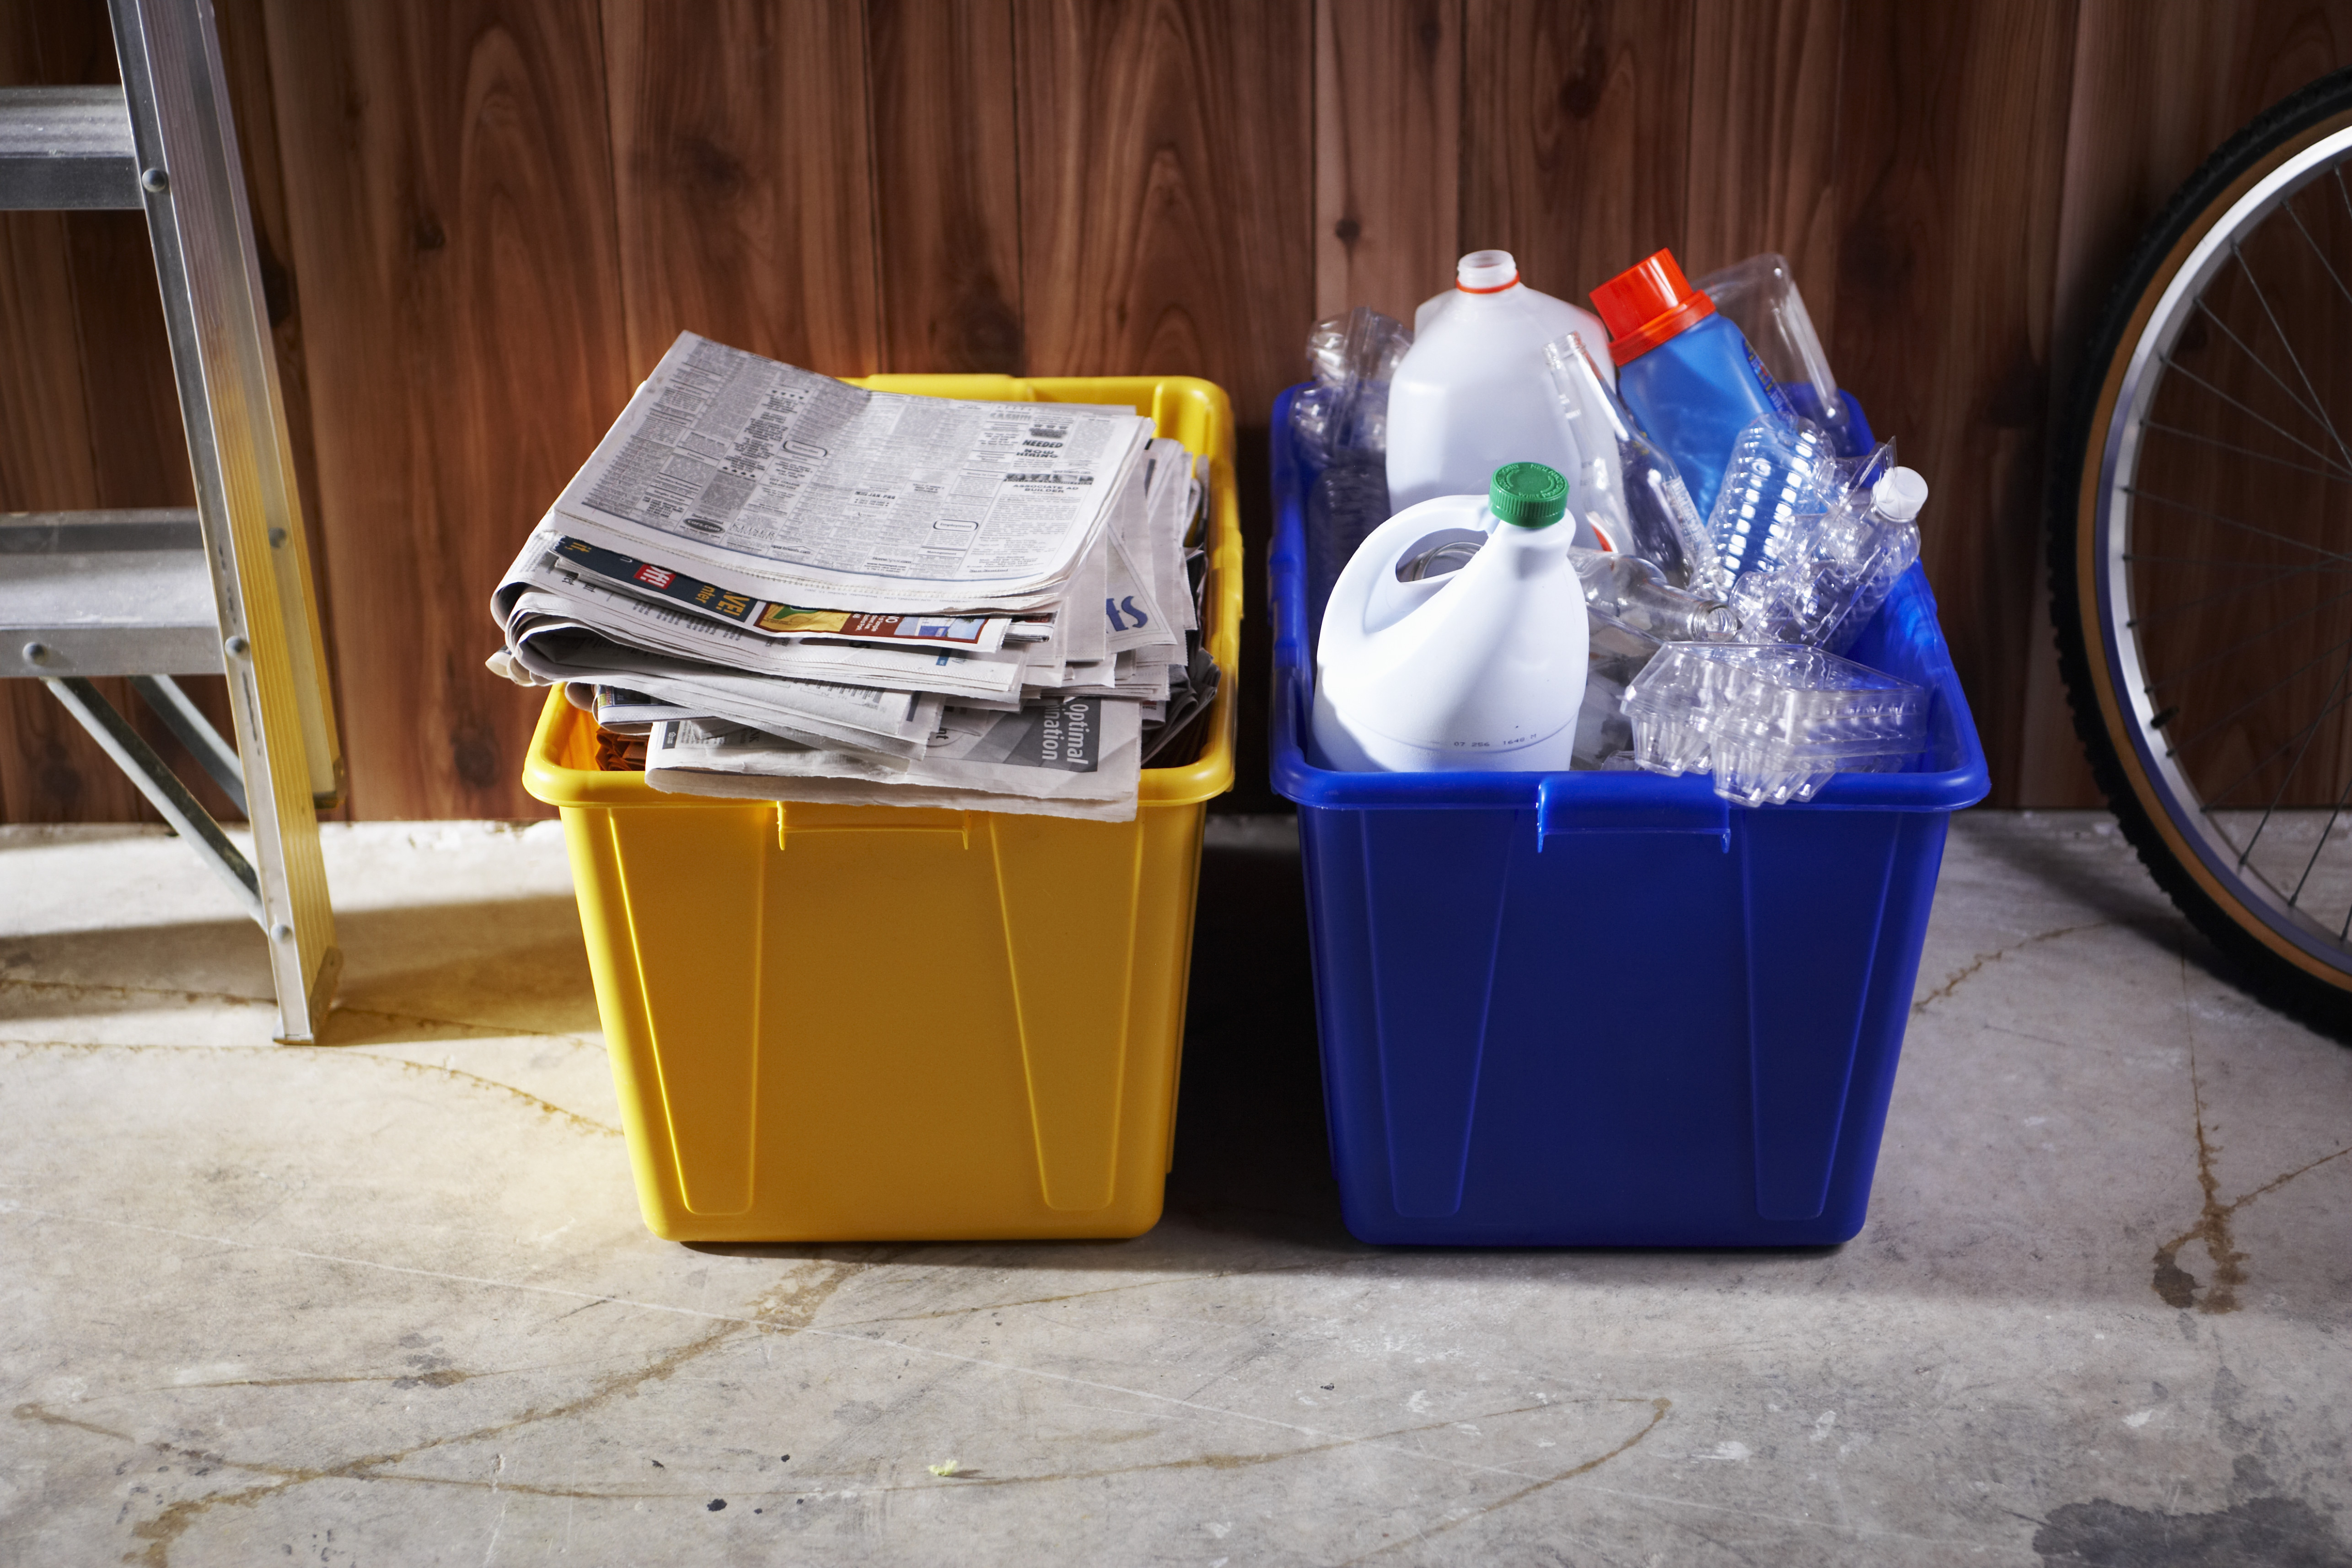 Is it time to rethink recycling?